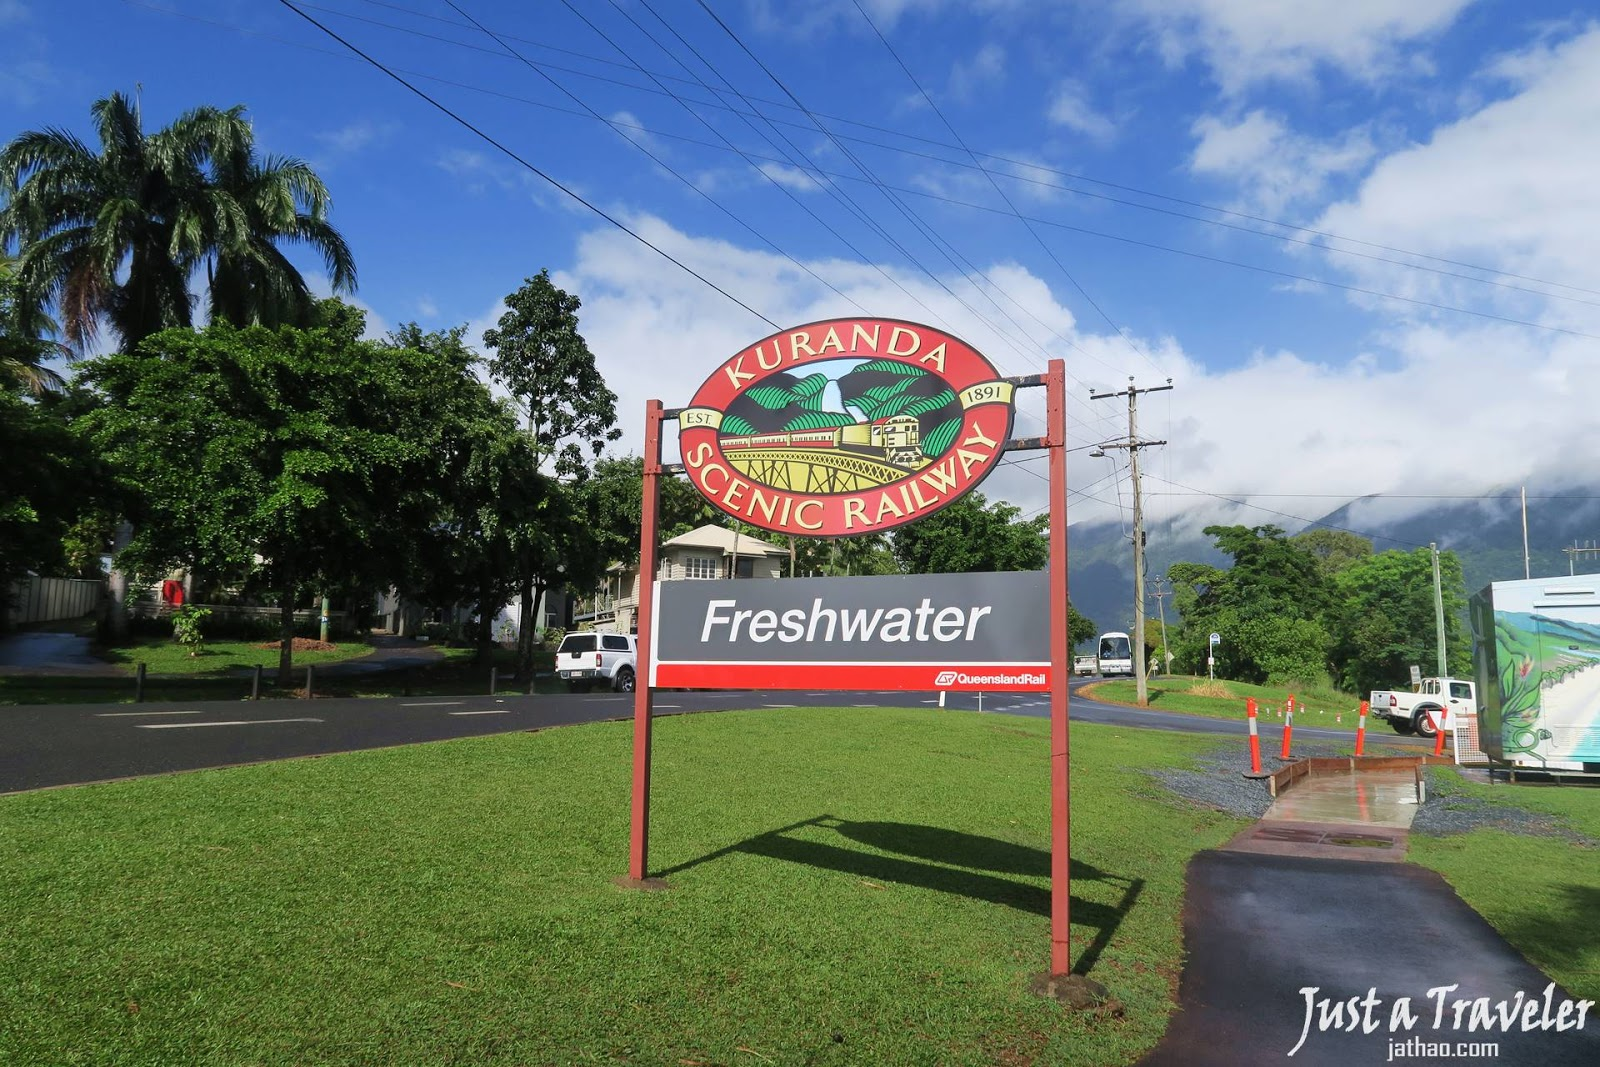 凱恩斯-庫蘭達-交通-清水站-觀光火車-自由行-旅遊-澳洲-Cairns-Kuranda-Scenic-Railway-Freshwater-Travel-Tourist-Attraction-Australia